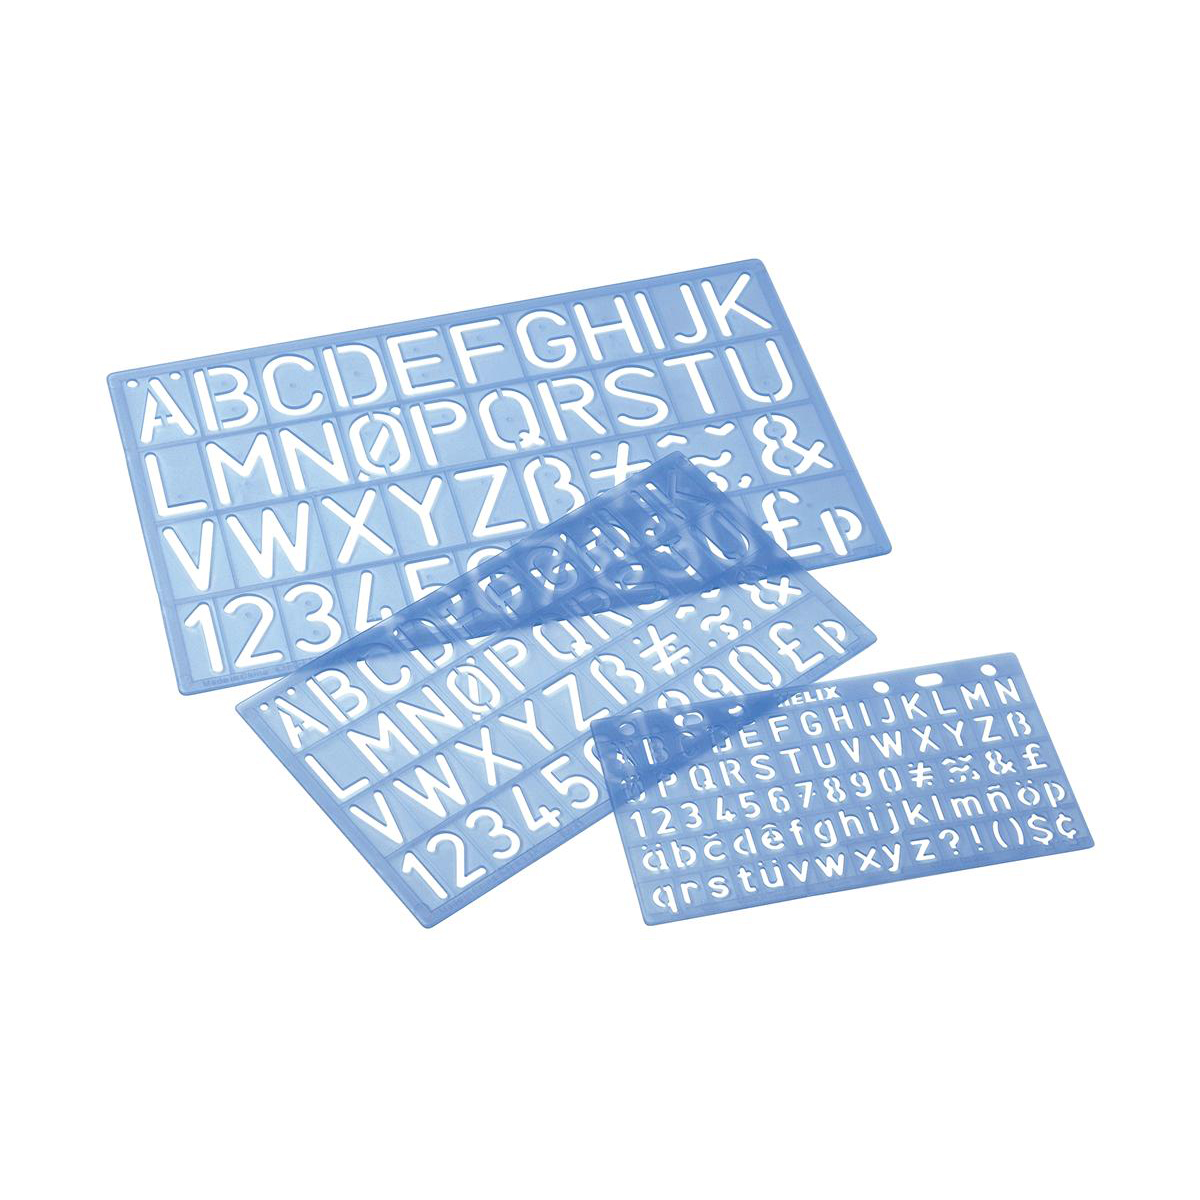 Stencils / Transfers Stencil Pack of Three Templates Letters/Numbers/Symbols 10/20/30mm with PVC Sleeve Blue Tint